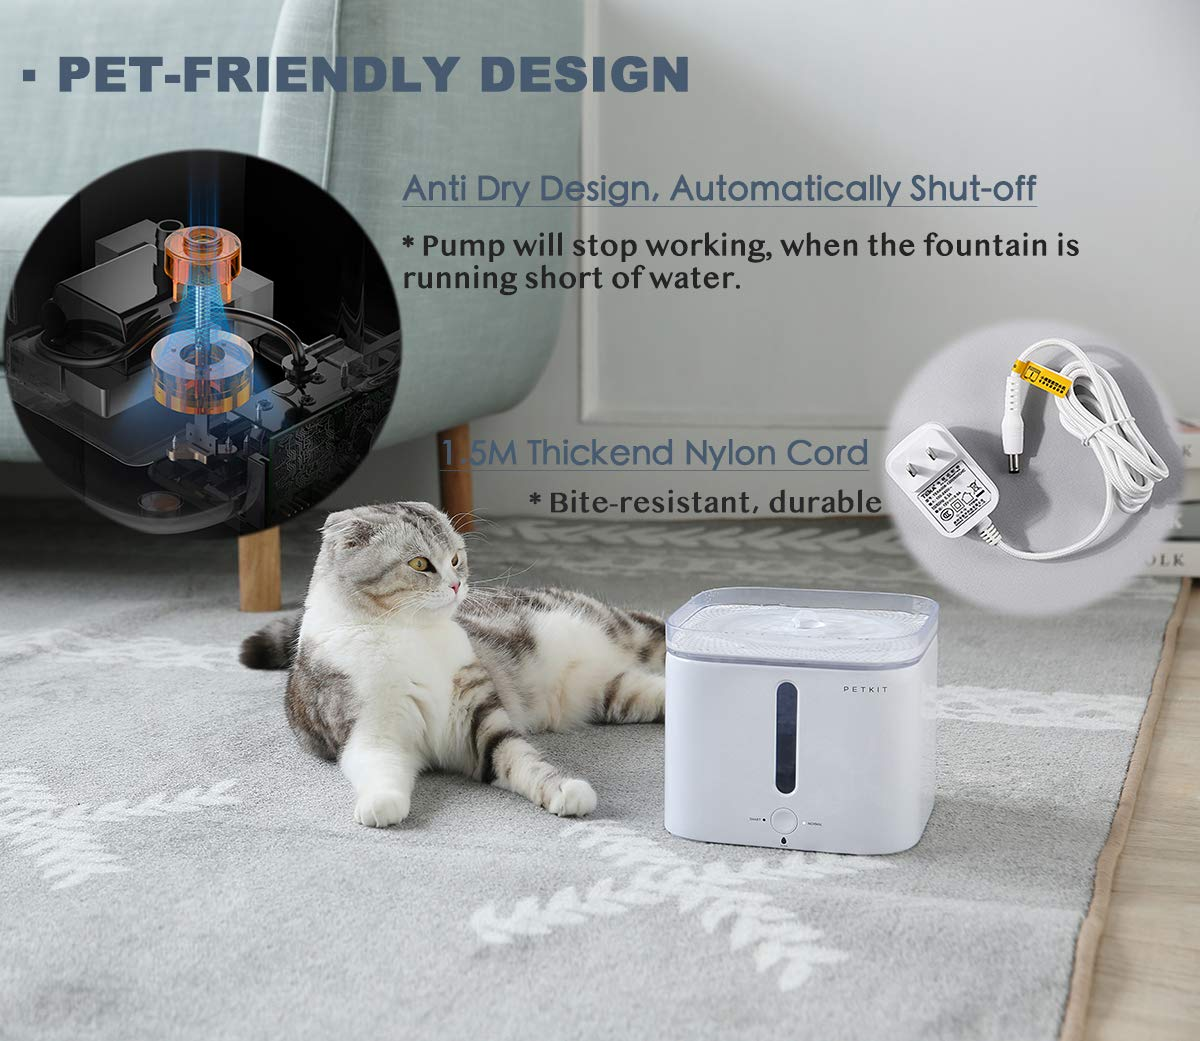 PETKIT EVERSWEET Cat Water Fountain 2.0, 2L Automatic Pet Water Fountain for Dog and Cat Super Quiet with Water-Shortage Alert and Filter-Change Reminder, Auto Power-Off Pet Water Dispenser by PETKIT (Image #7)